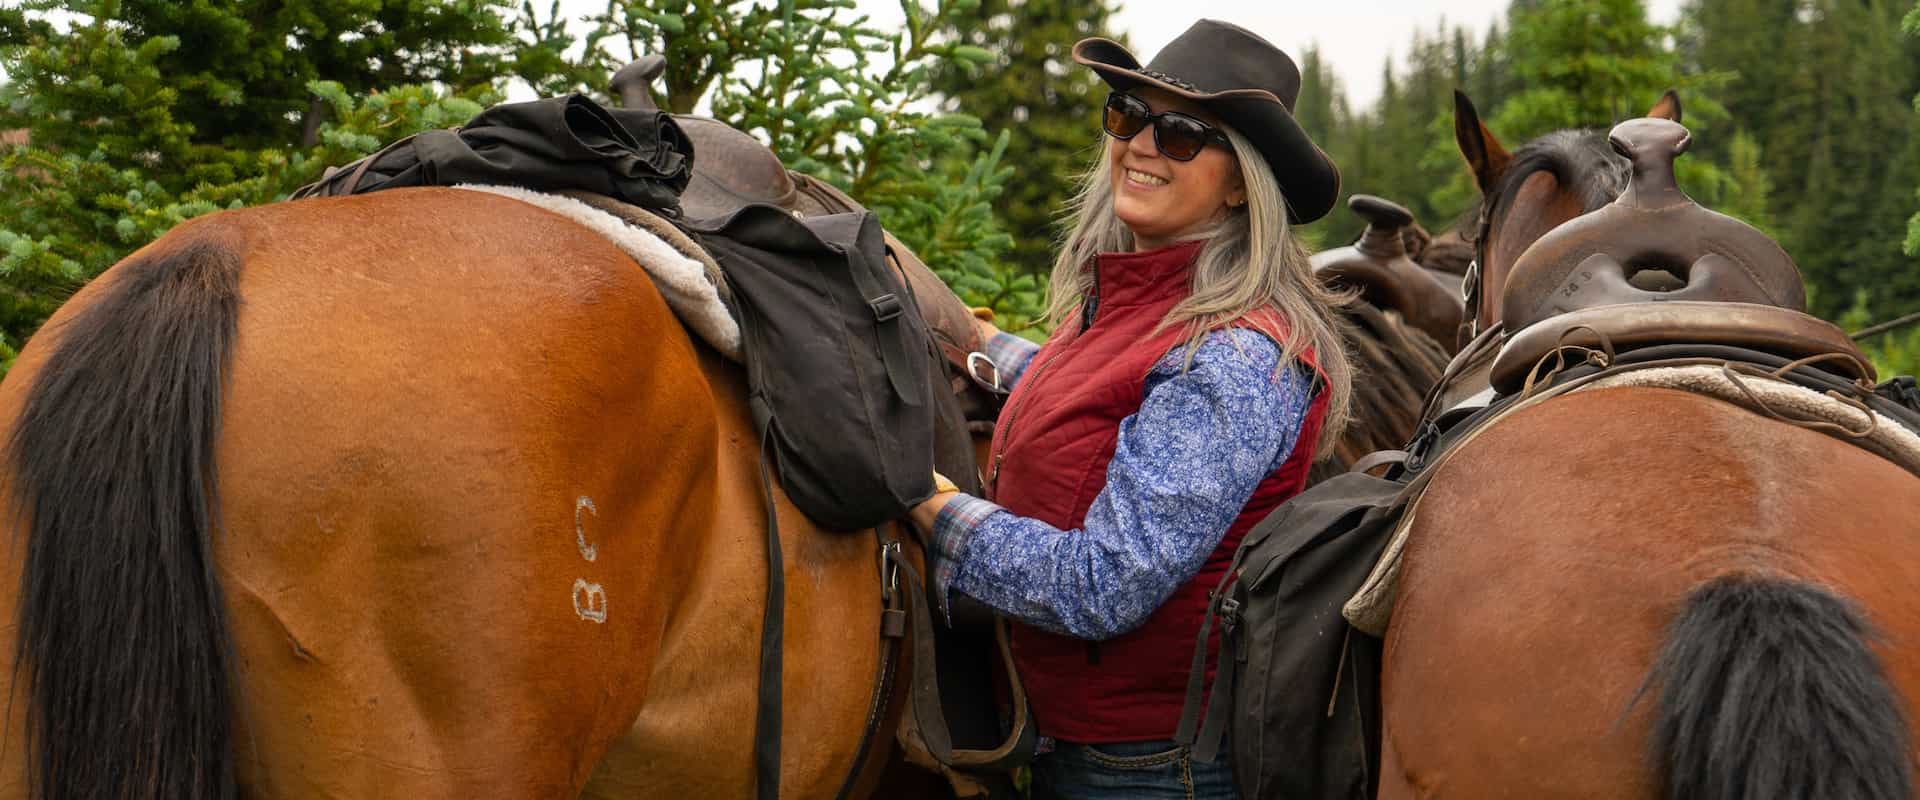 Saddle Up for the Stoney Creek Backcountry Tent Trip with Banff Trail Riders in the Canadian Rockies